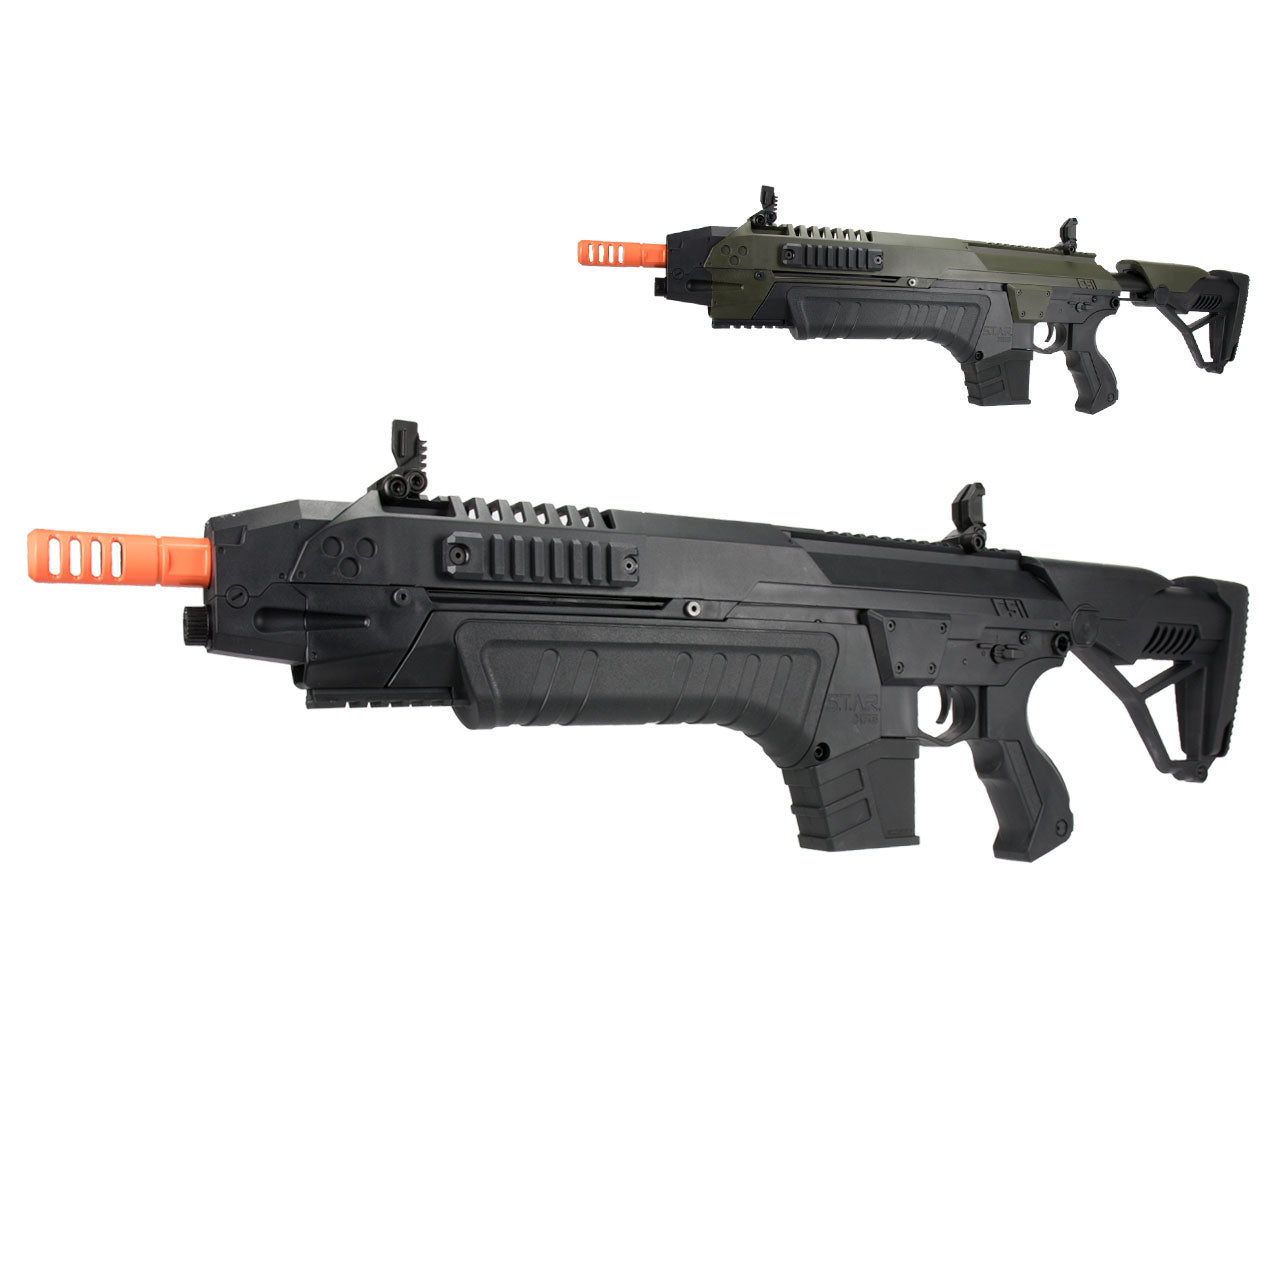 CSI S.T.A.R. XR-5 FG-1508 Advanced Battle Rifle